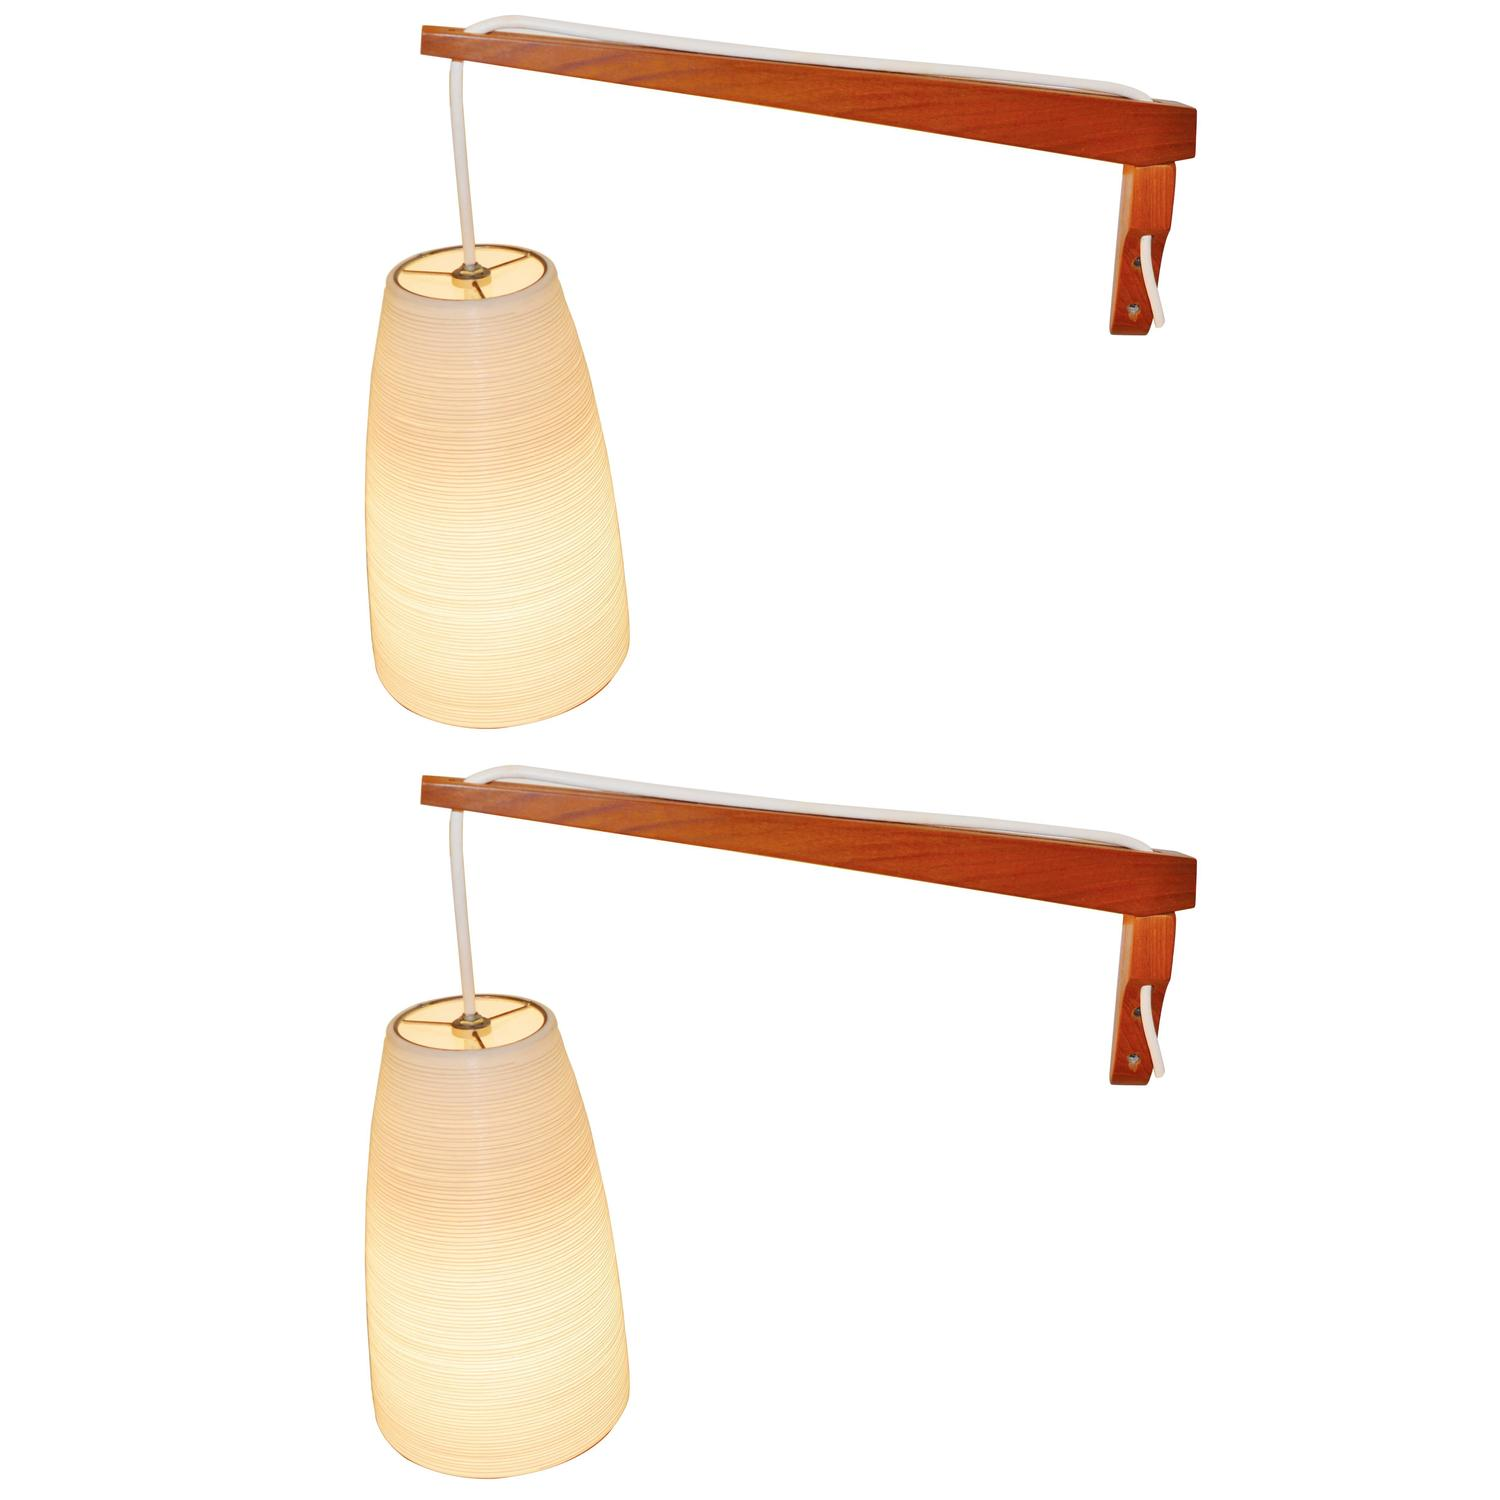 sc 1 st  1stDibs & Pair of Danish Teak Wall-Mount Lights with Lotte Pendants at 1stdibs